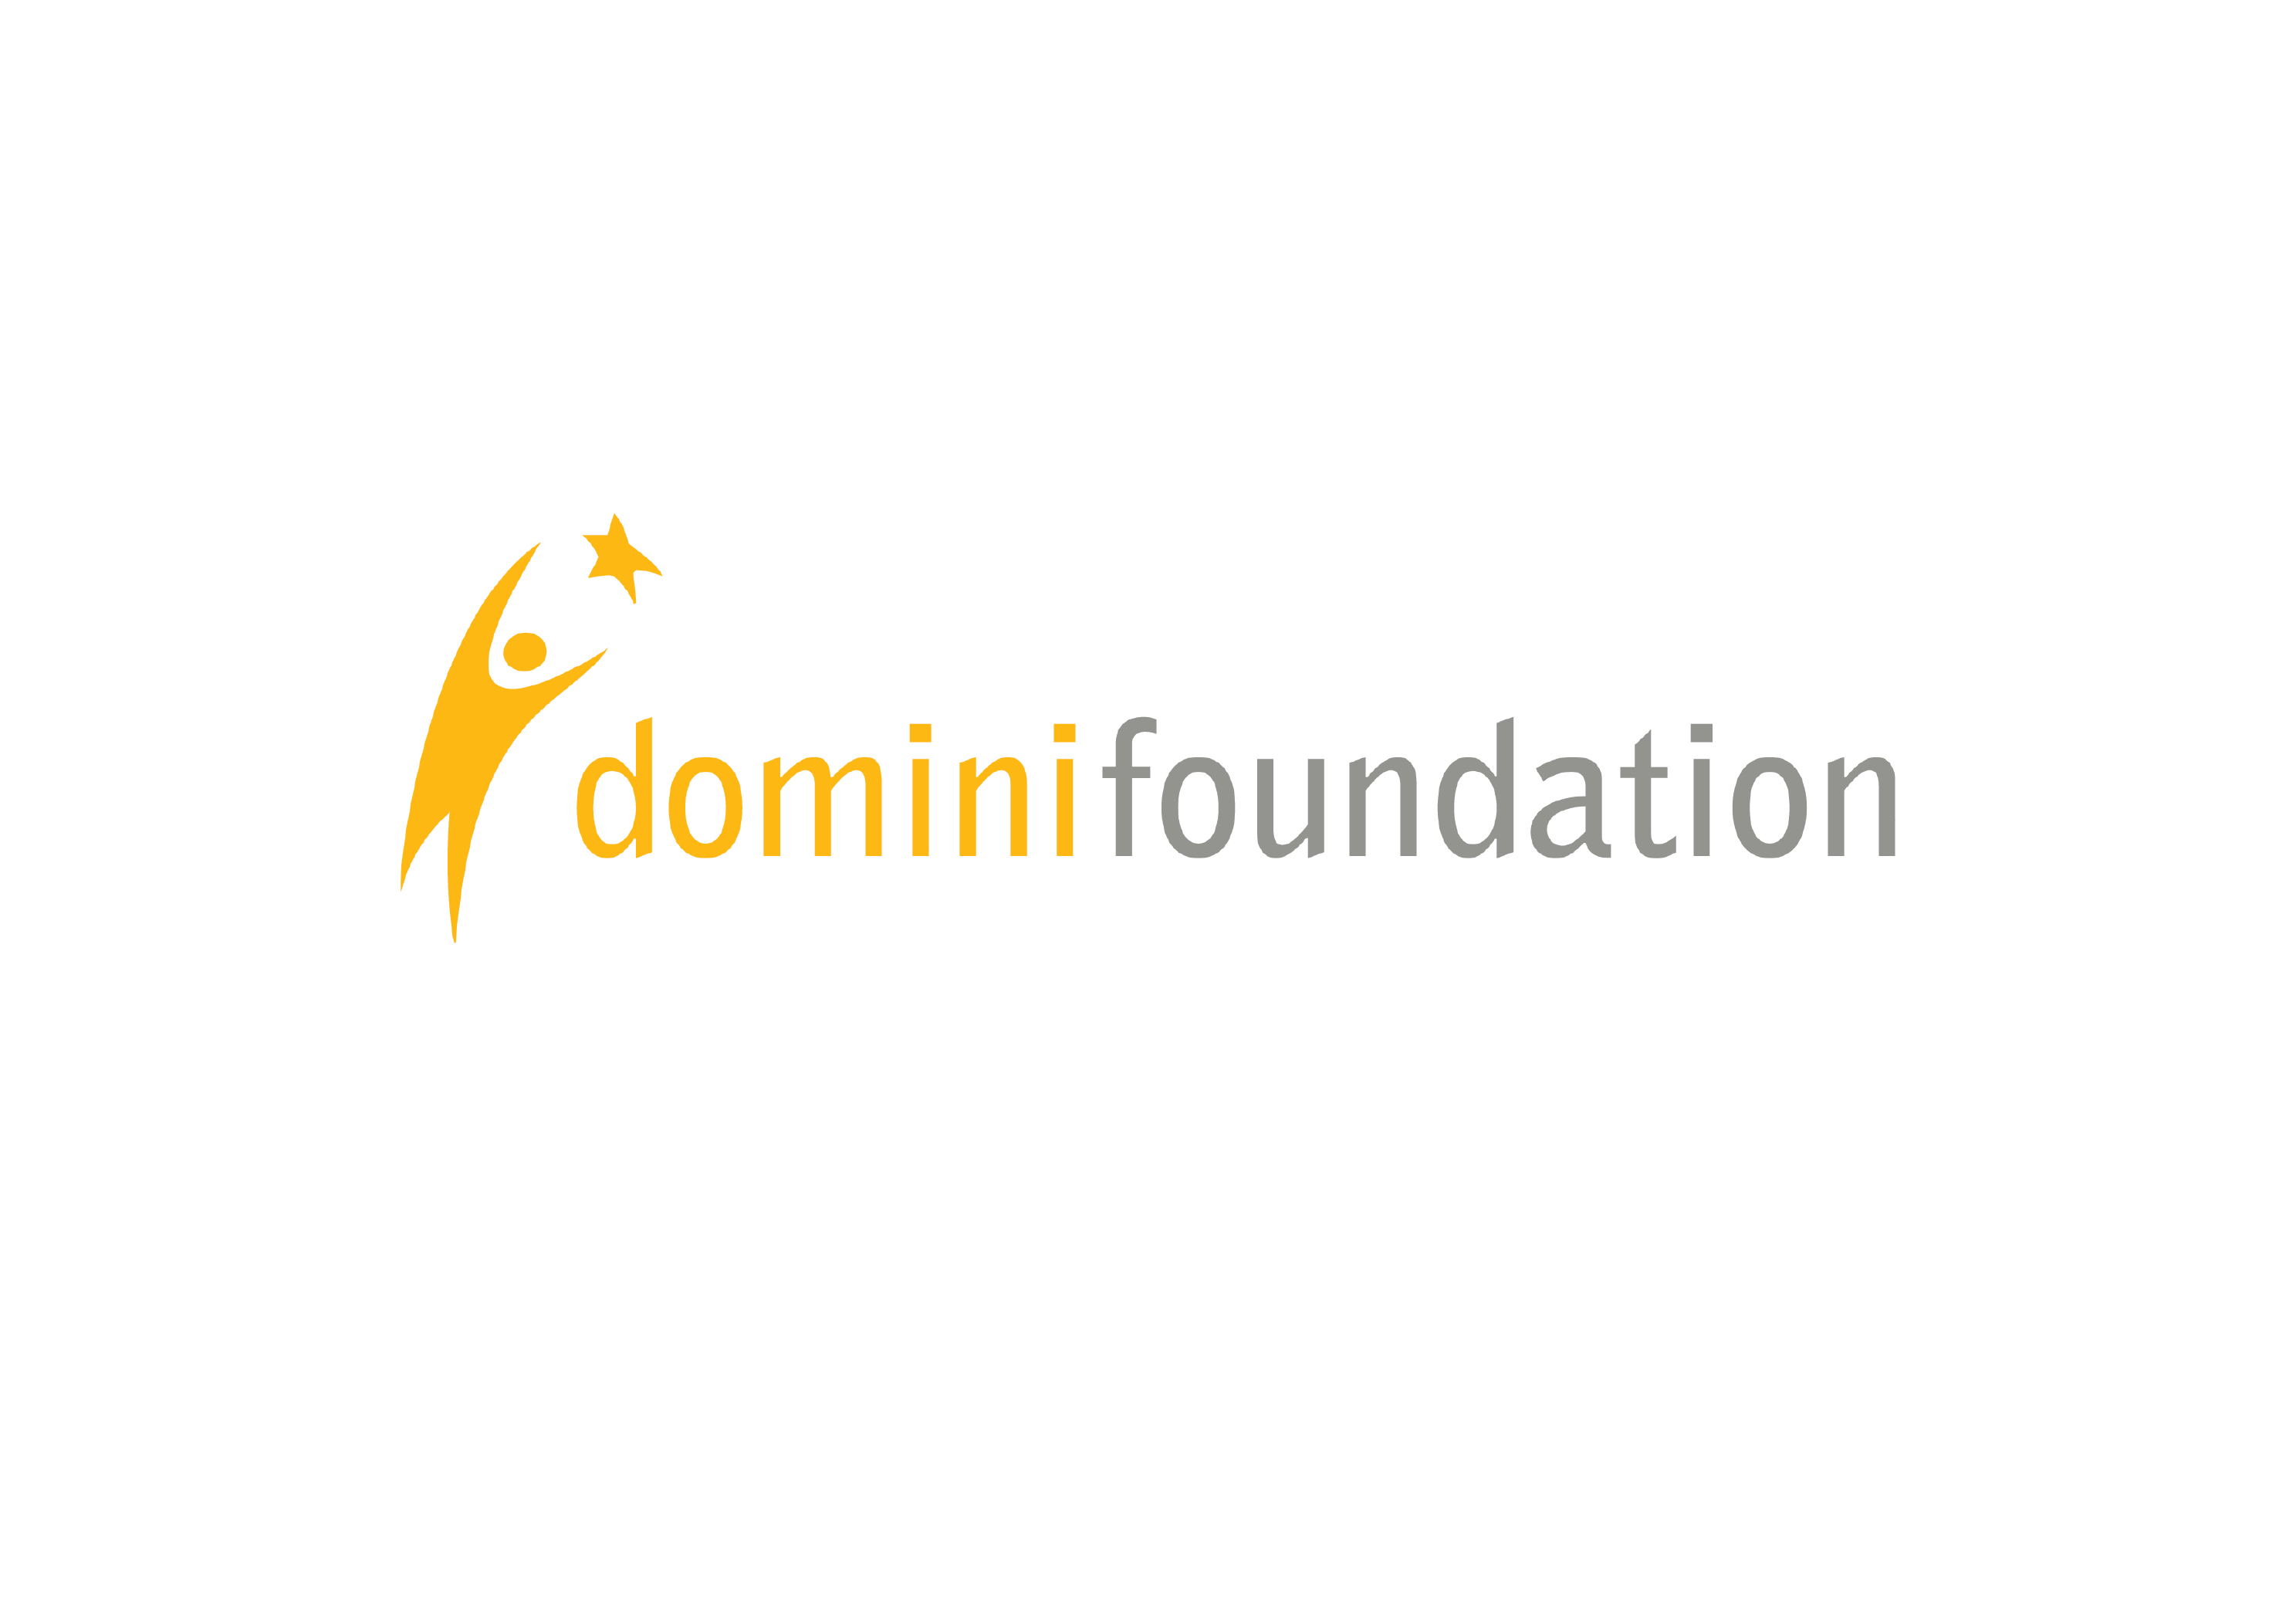 Domini Foundation Brand Identity